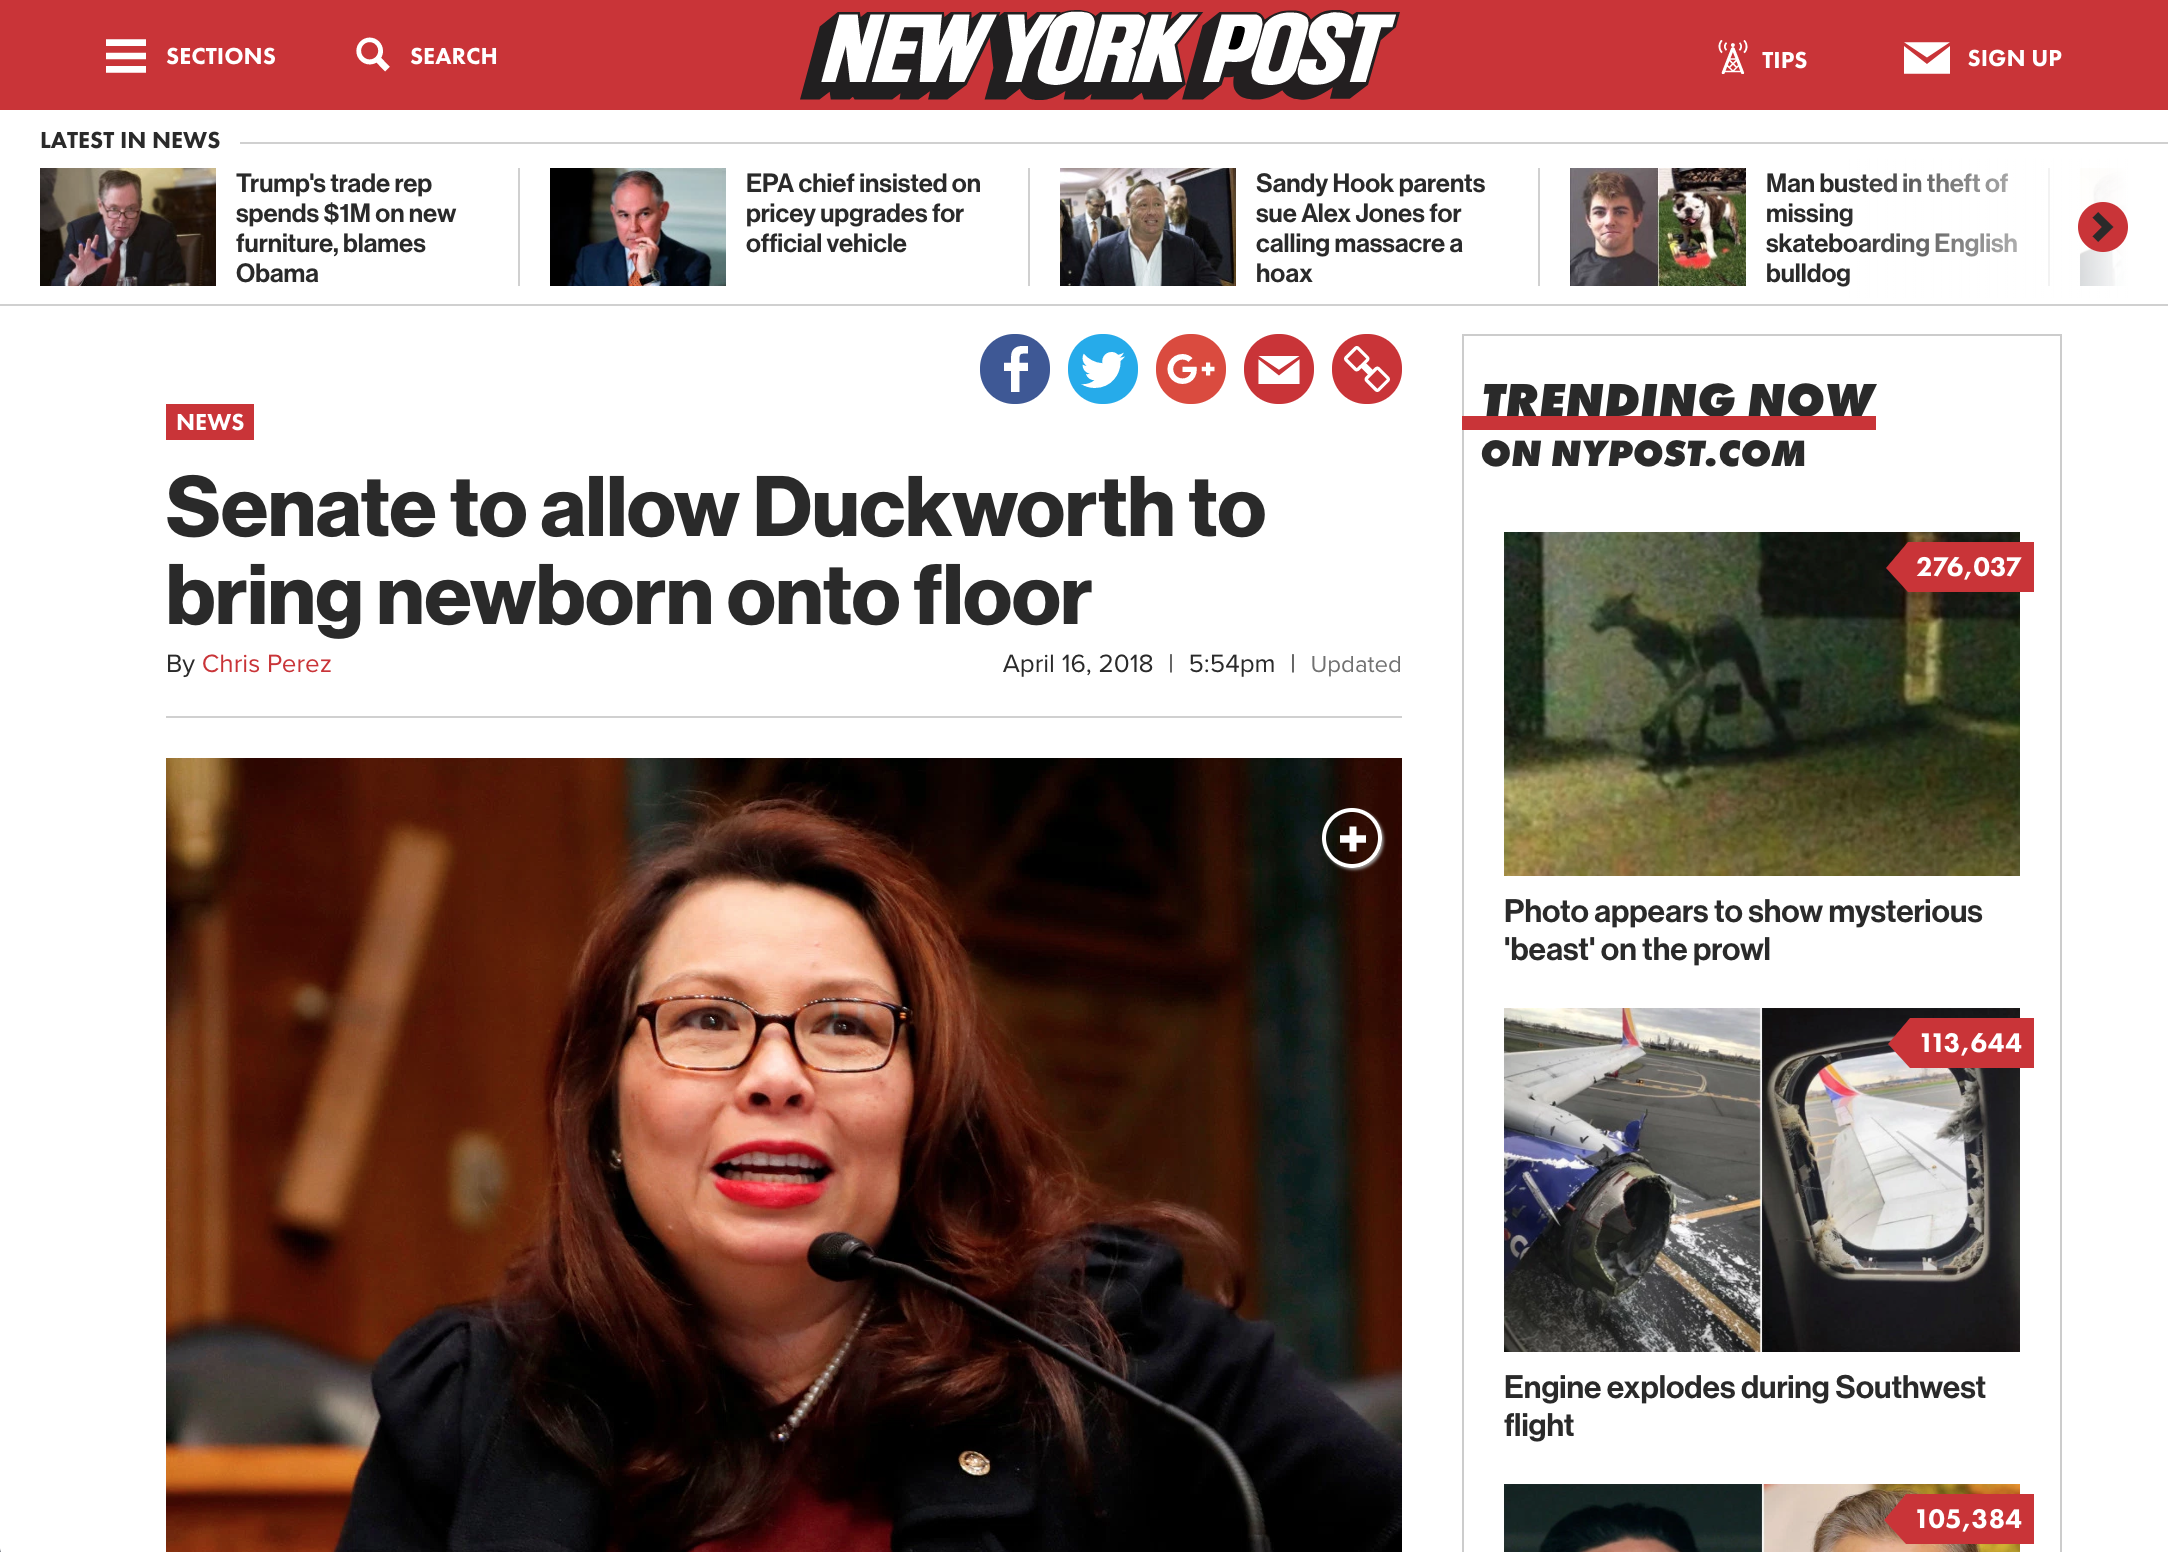 The main page of the New York Post with navigation, featured article, and additional content